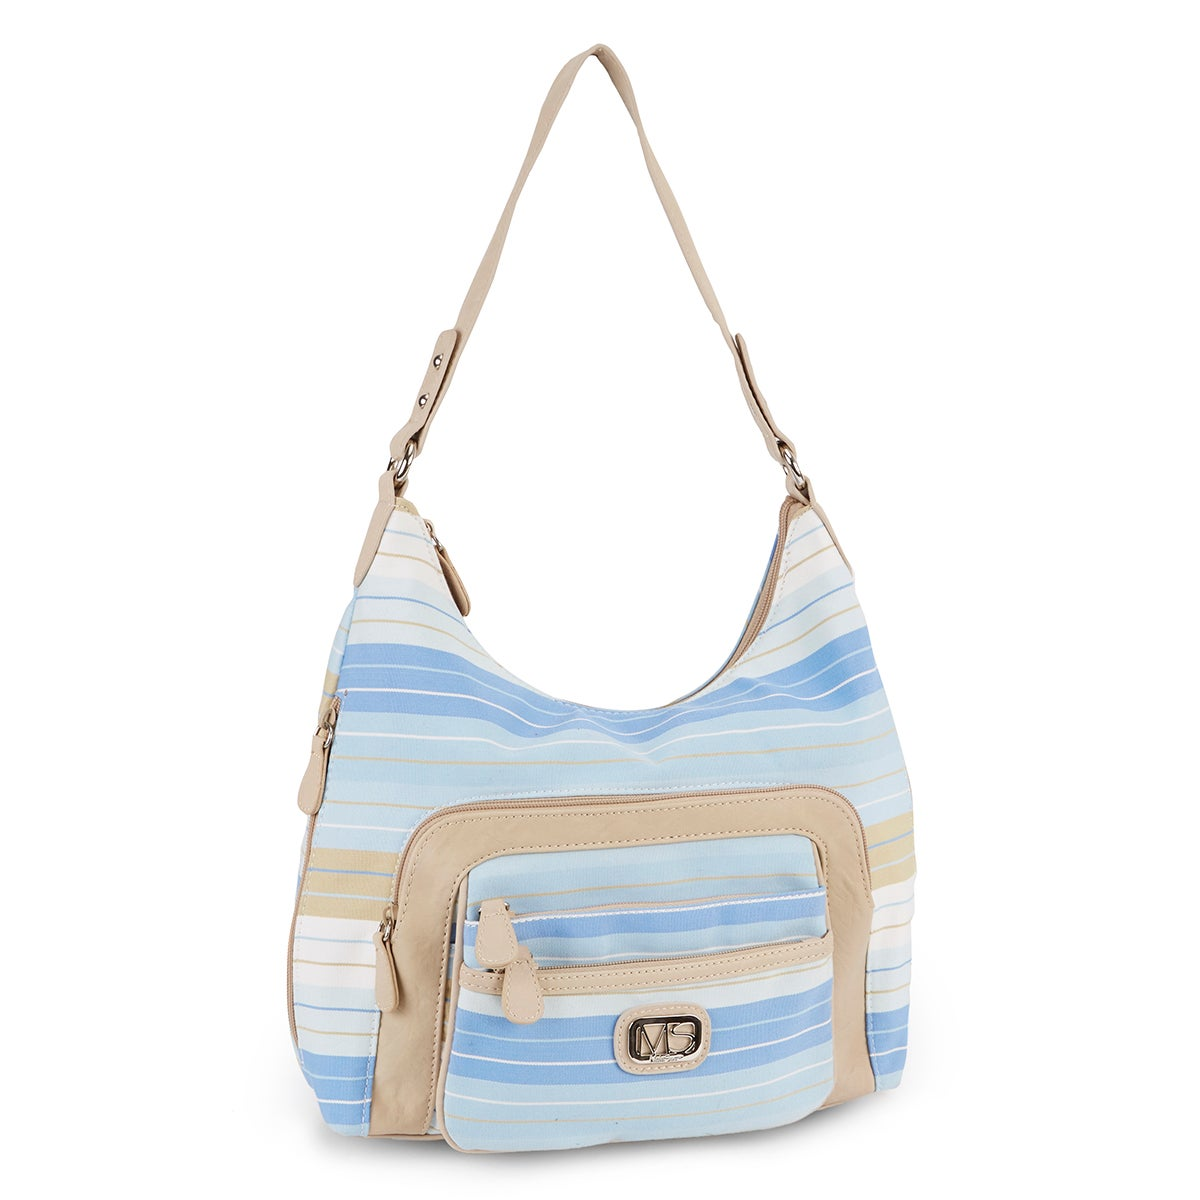 Lds blue/chino striped hobo bag